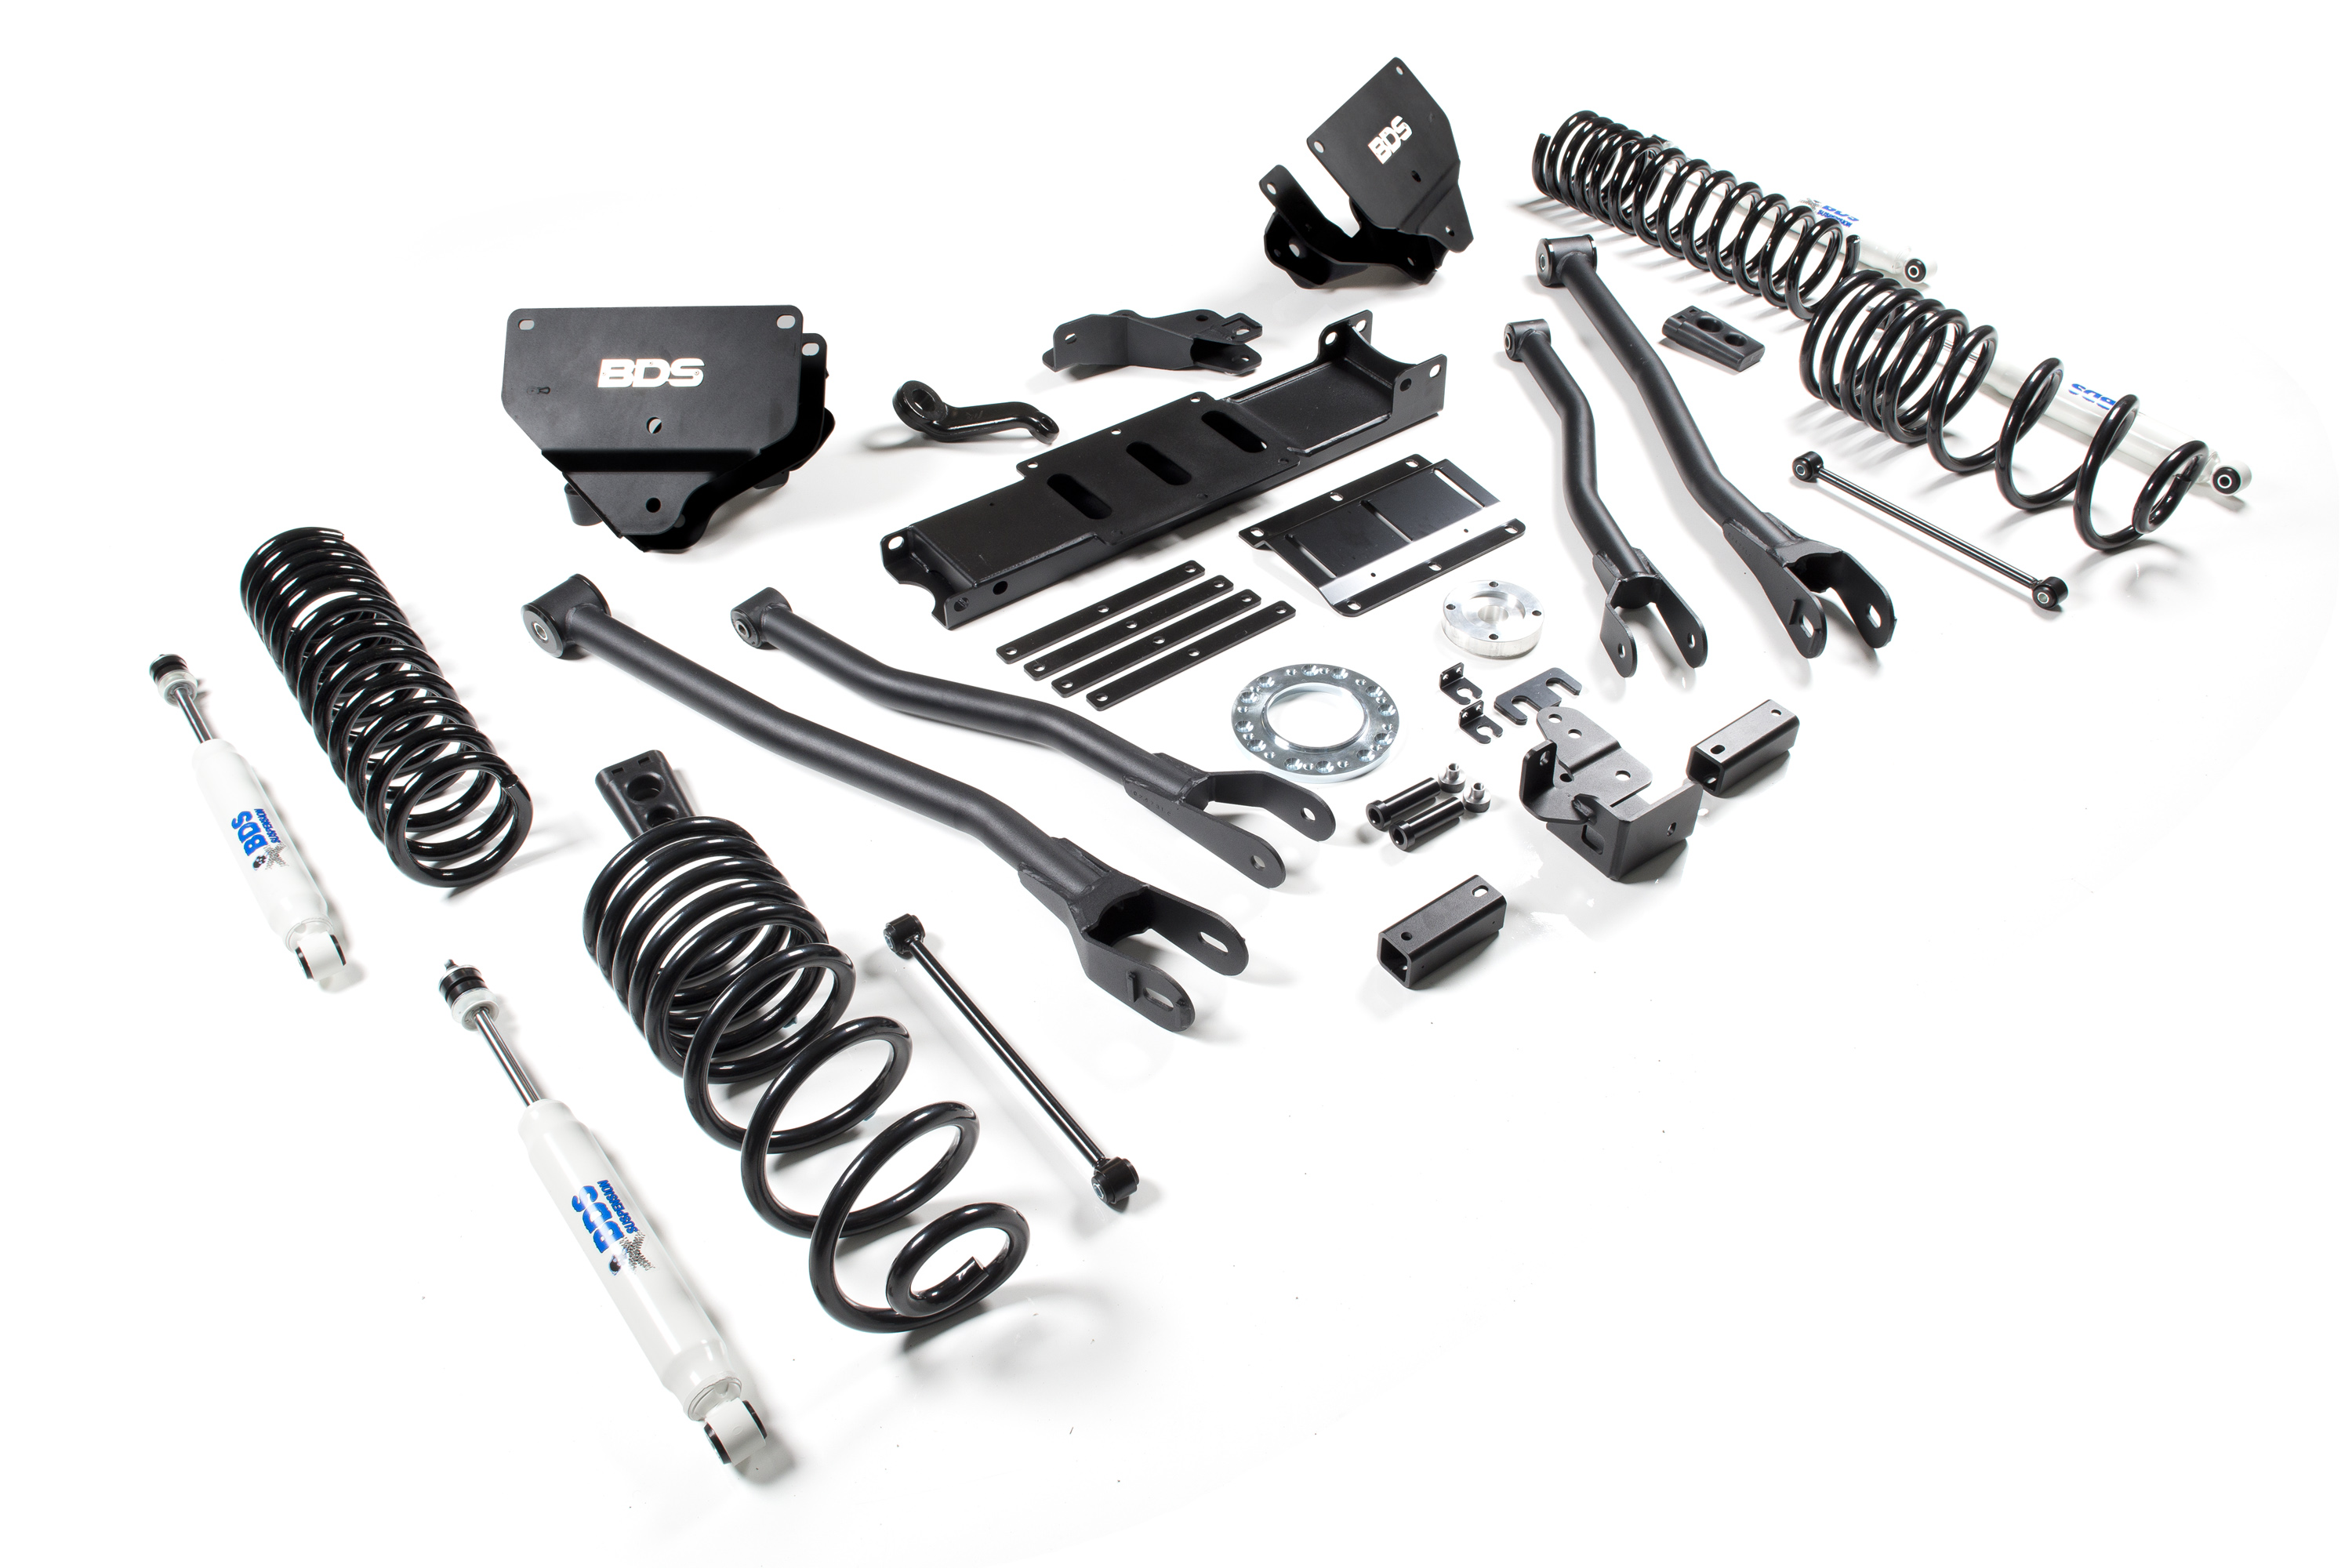 Ram Kits Now Available From Bds Suspension